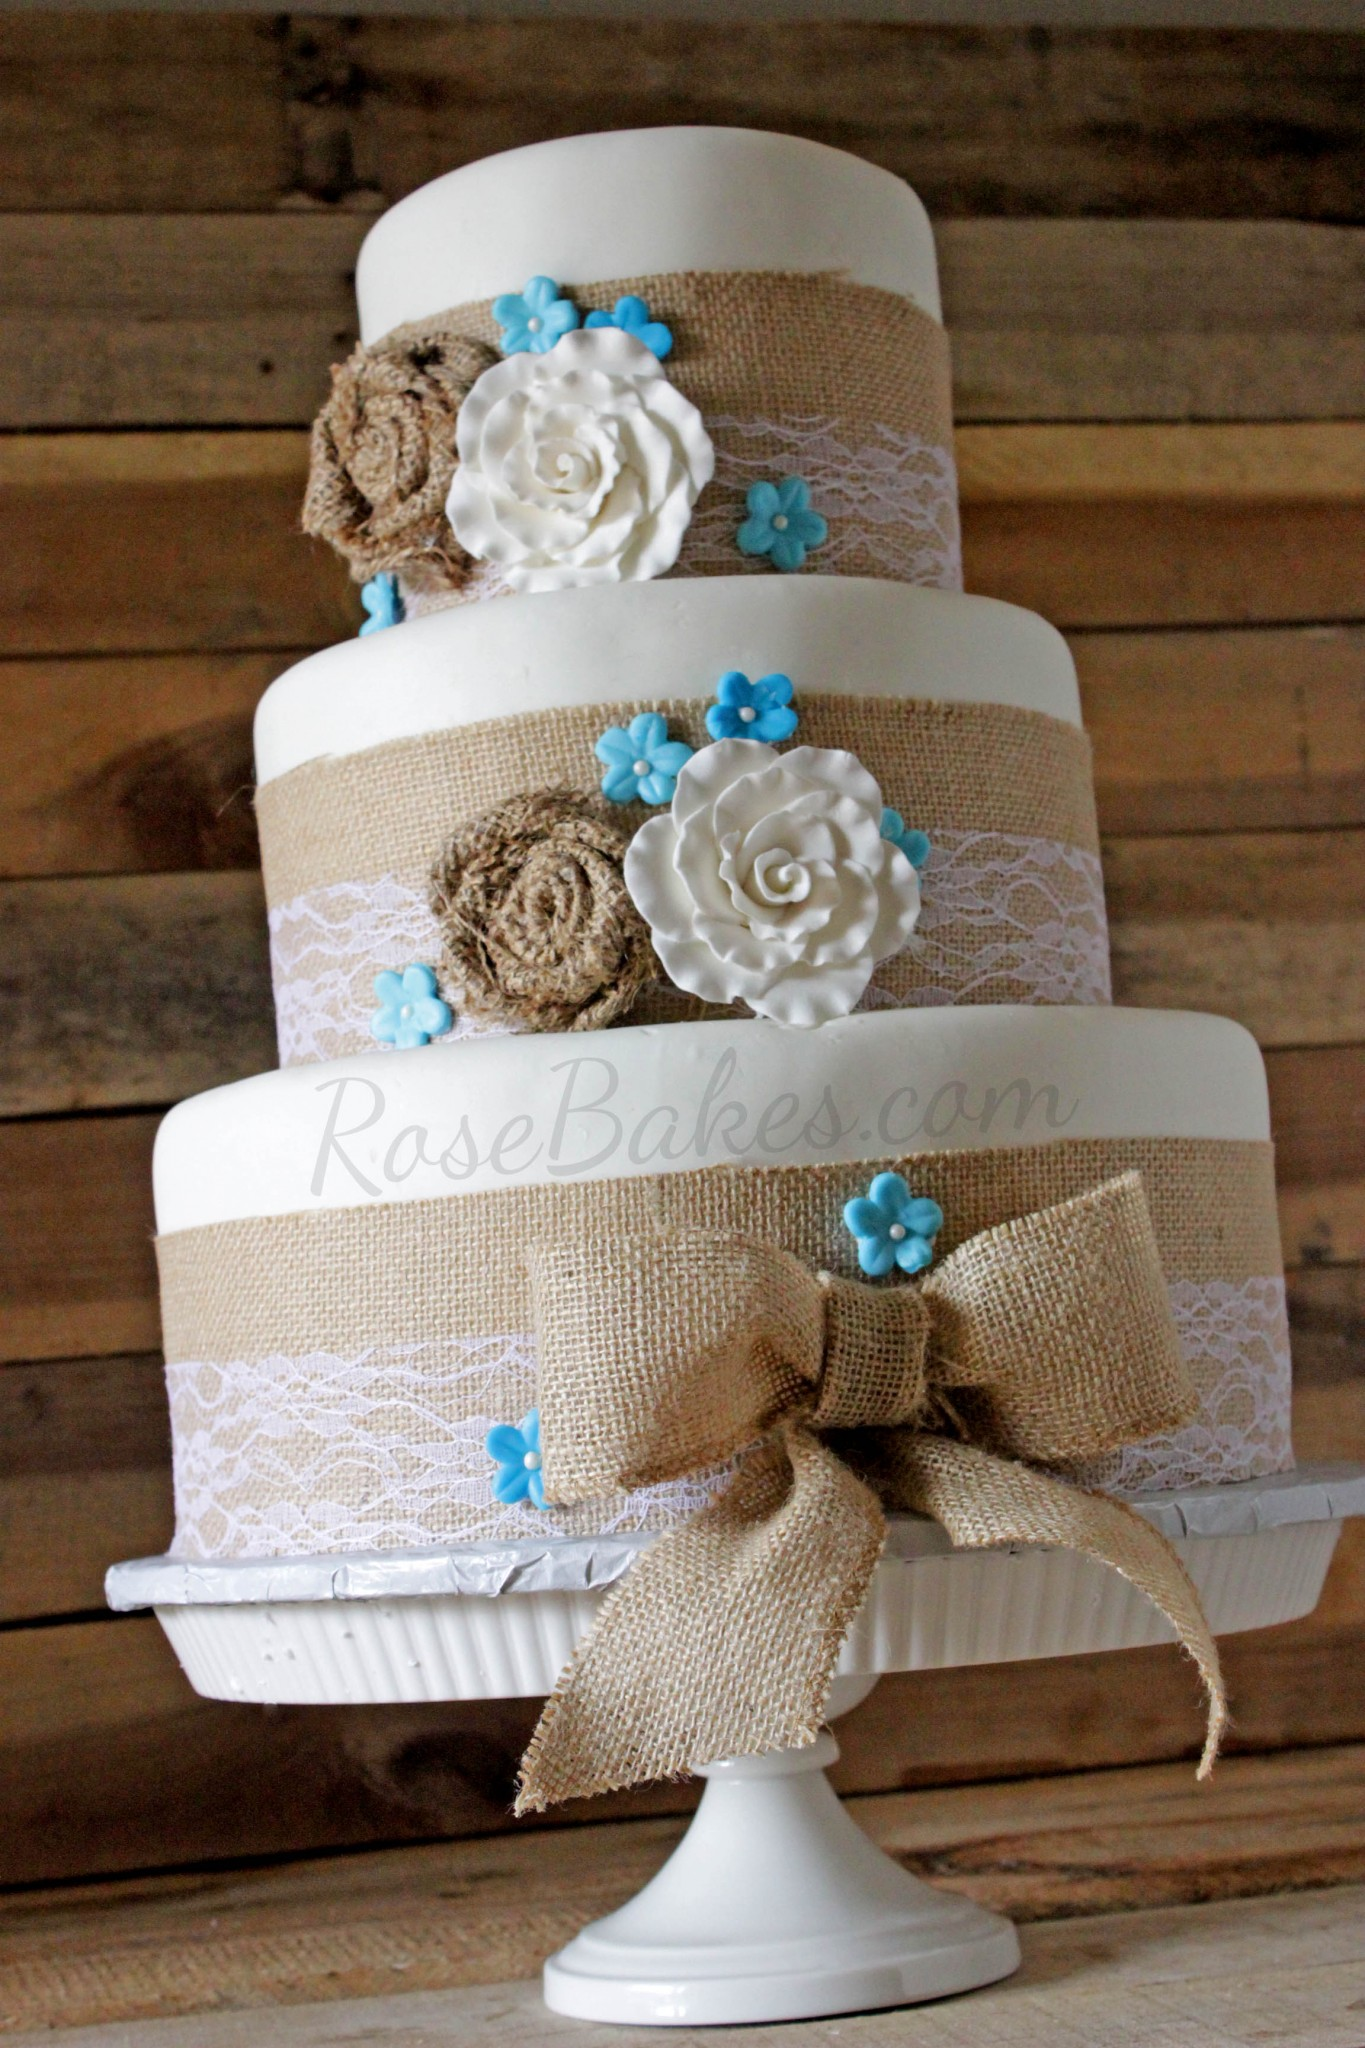 11 Burlap Wedding Cakes With Country Style Photo Rustic Wedding